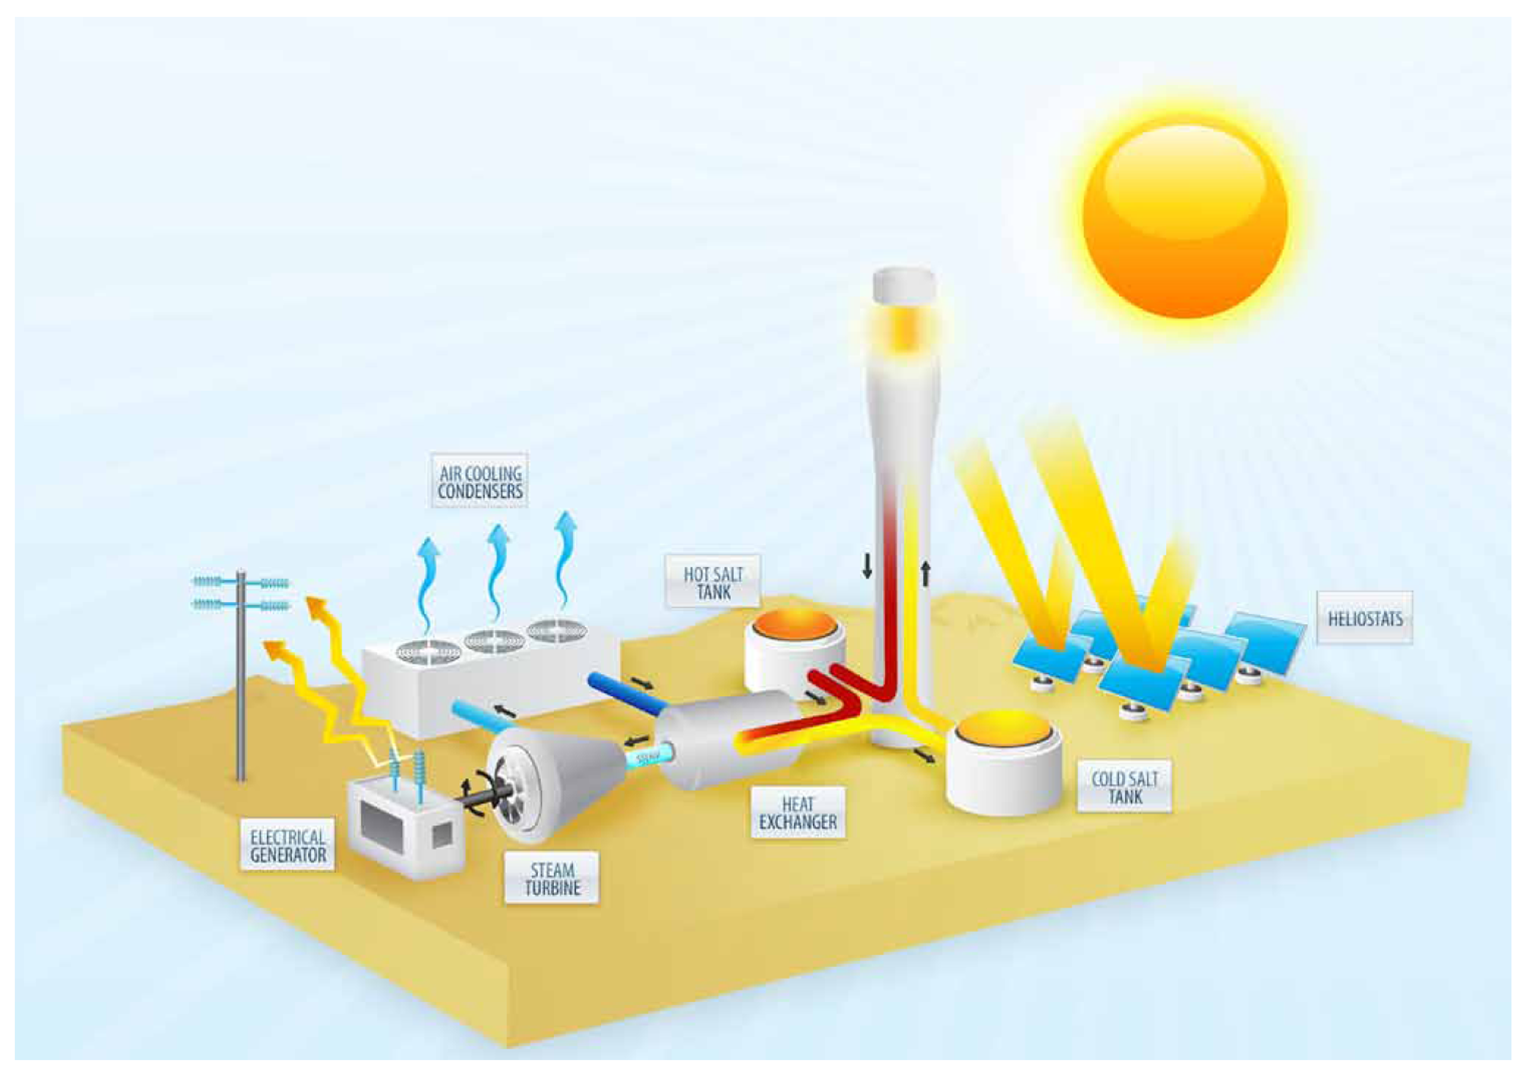 hight resolution of solar thermal power plants diagram for more great solar and wind power projects and information go to www windmillsforelectricity com